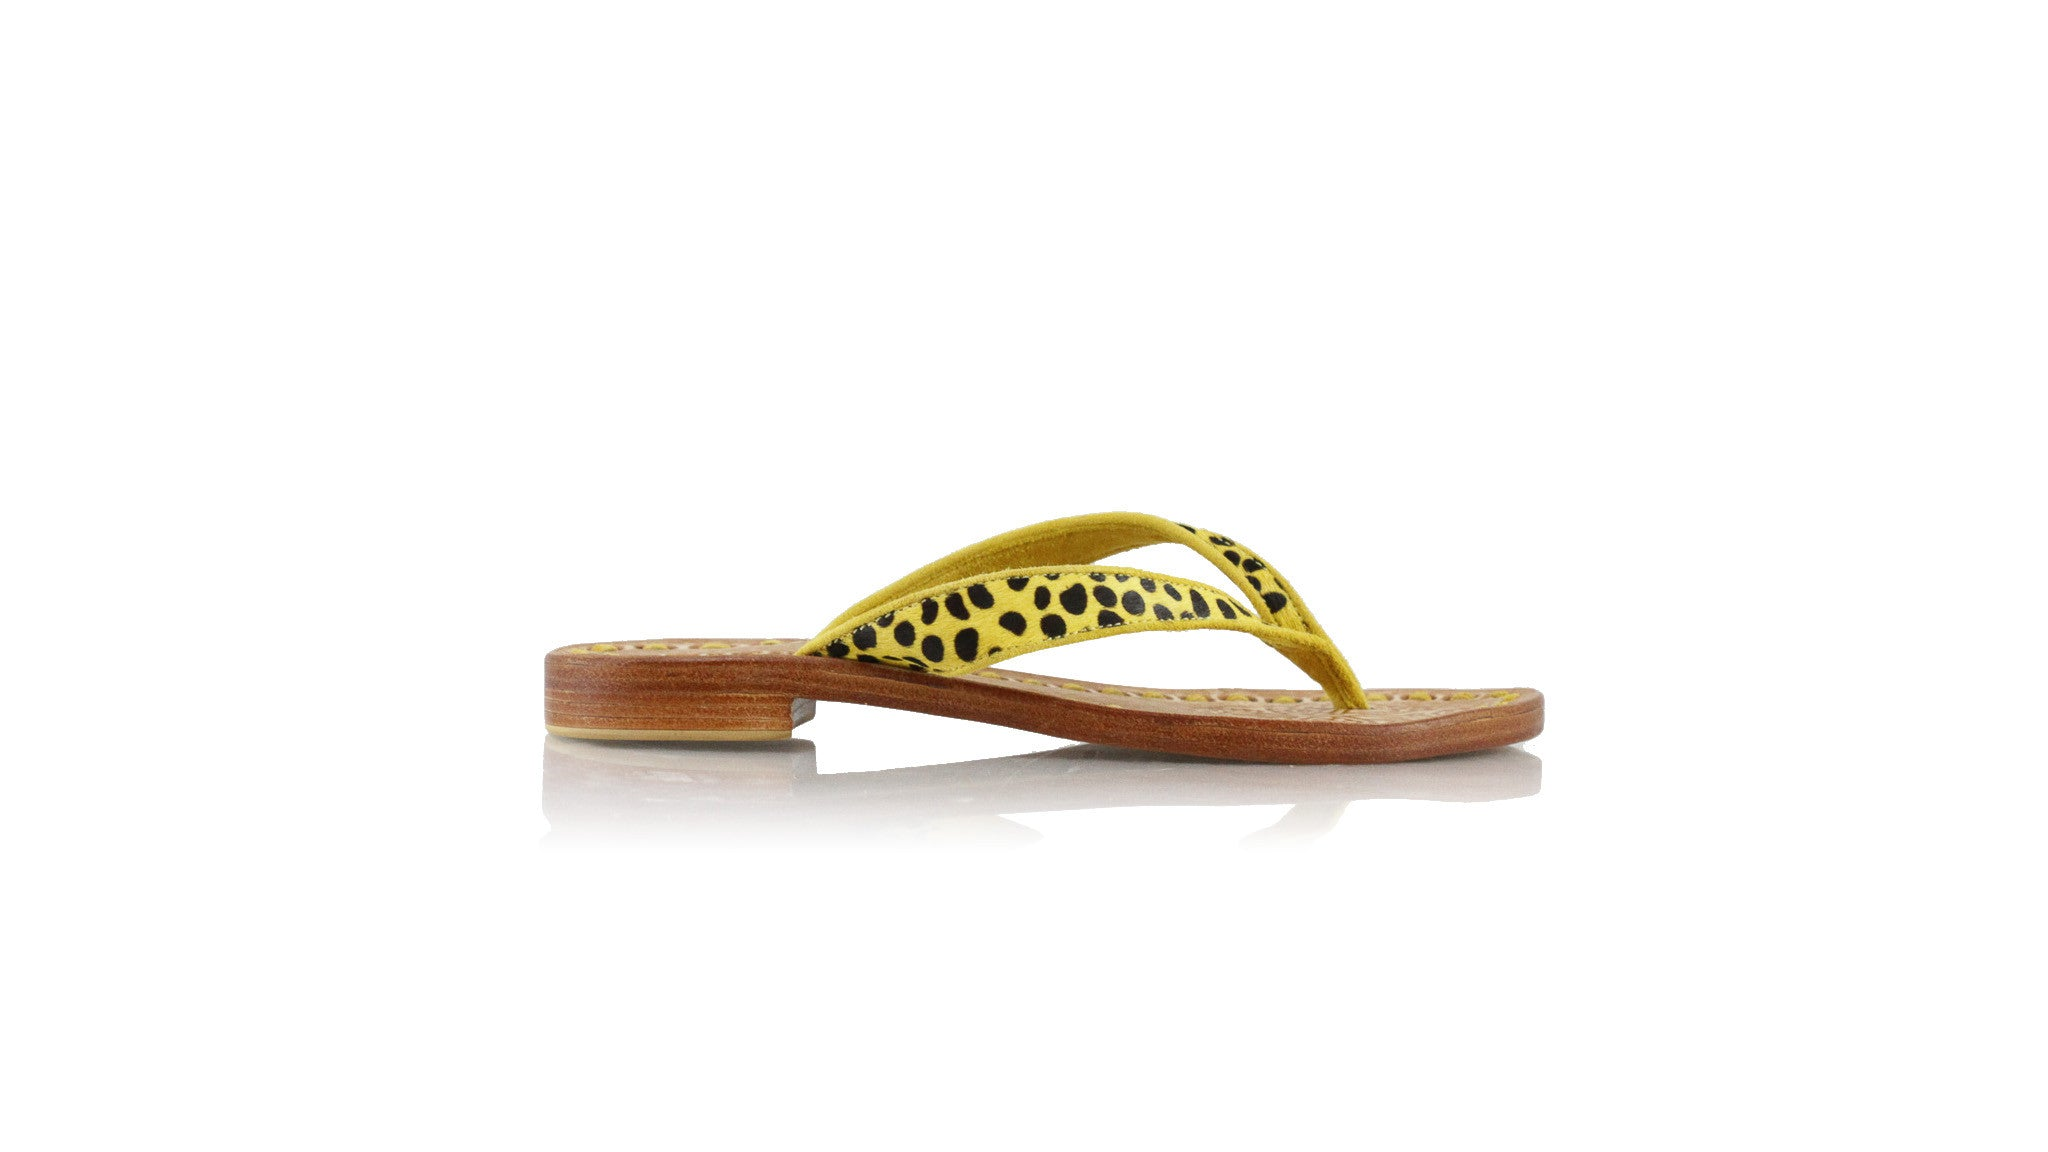 Leather-shoes-Mikonos 20mm Flat - Yellow Pony Leopard & Yellow Piping-sandals flat-NILUH DJELANTIK-NILUH DJELANTIK